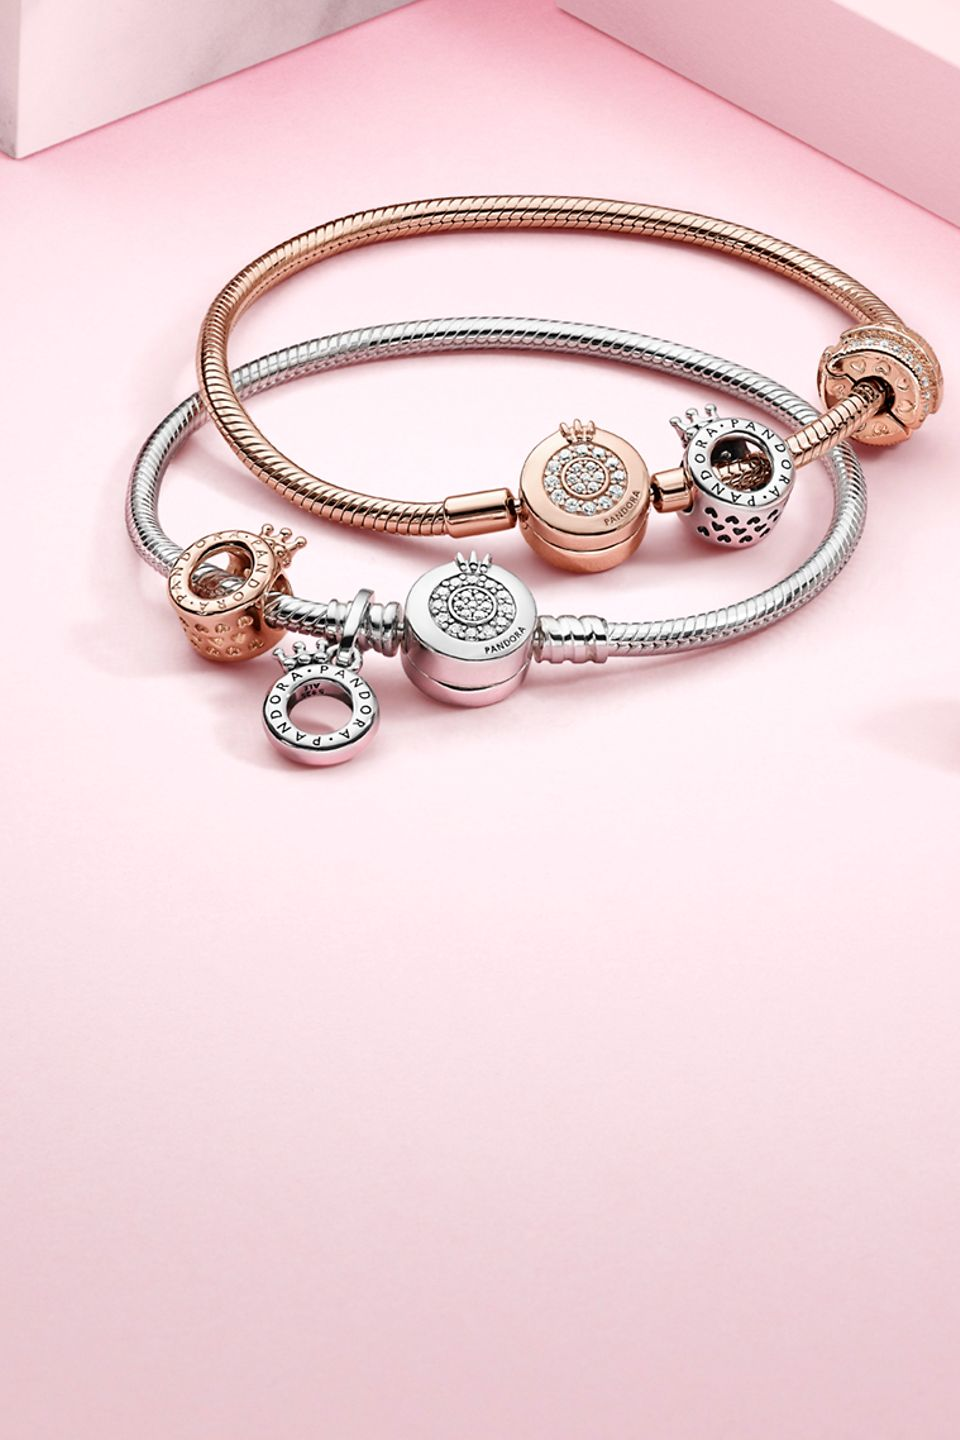 Pandora Signature charms and bracelets in sterling silver and Pandora Rose